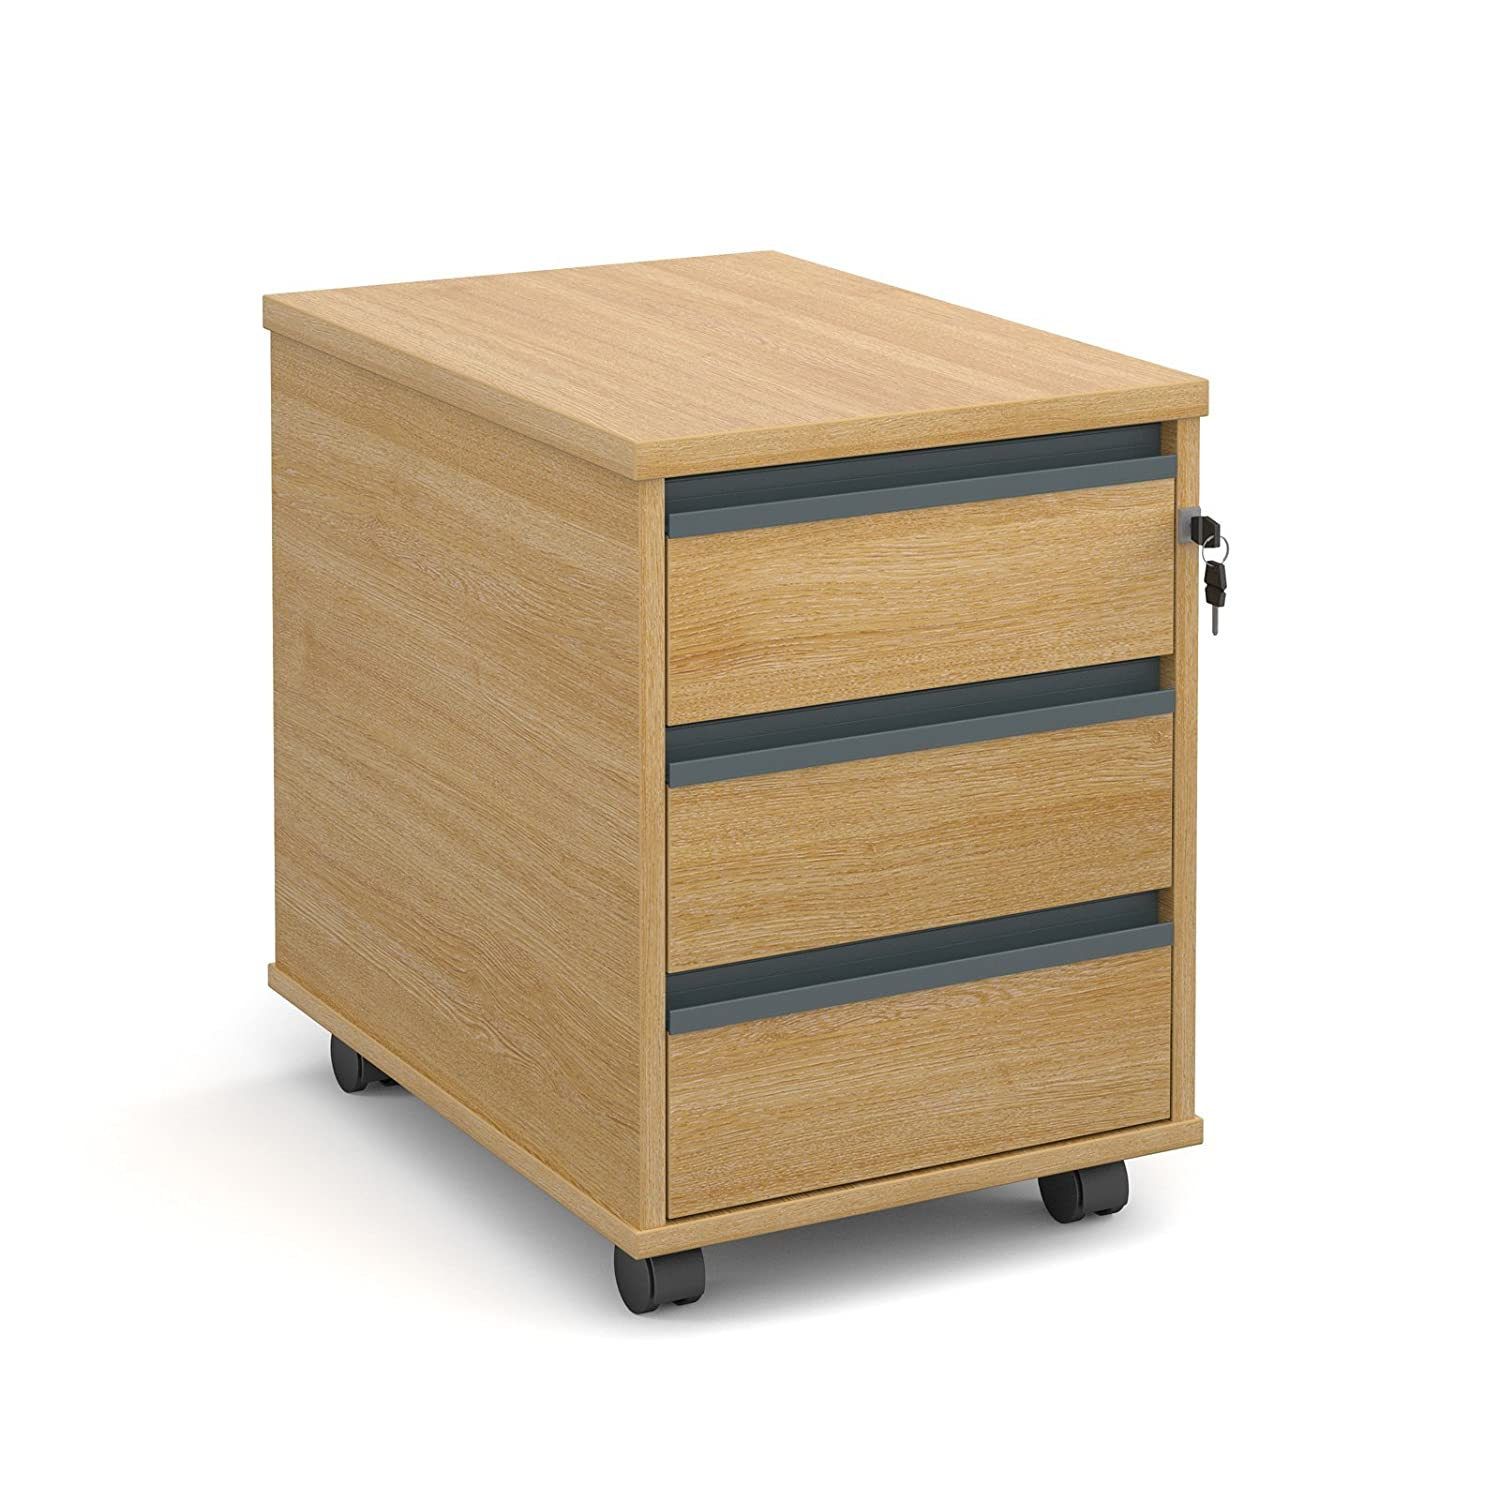 DAMS M25 3-Drawer Mobile Pedestal 1, Wood, Oak NAN300T1